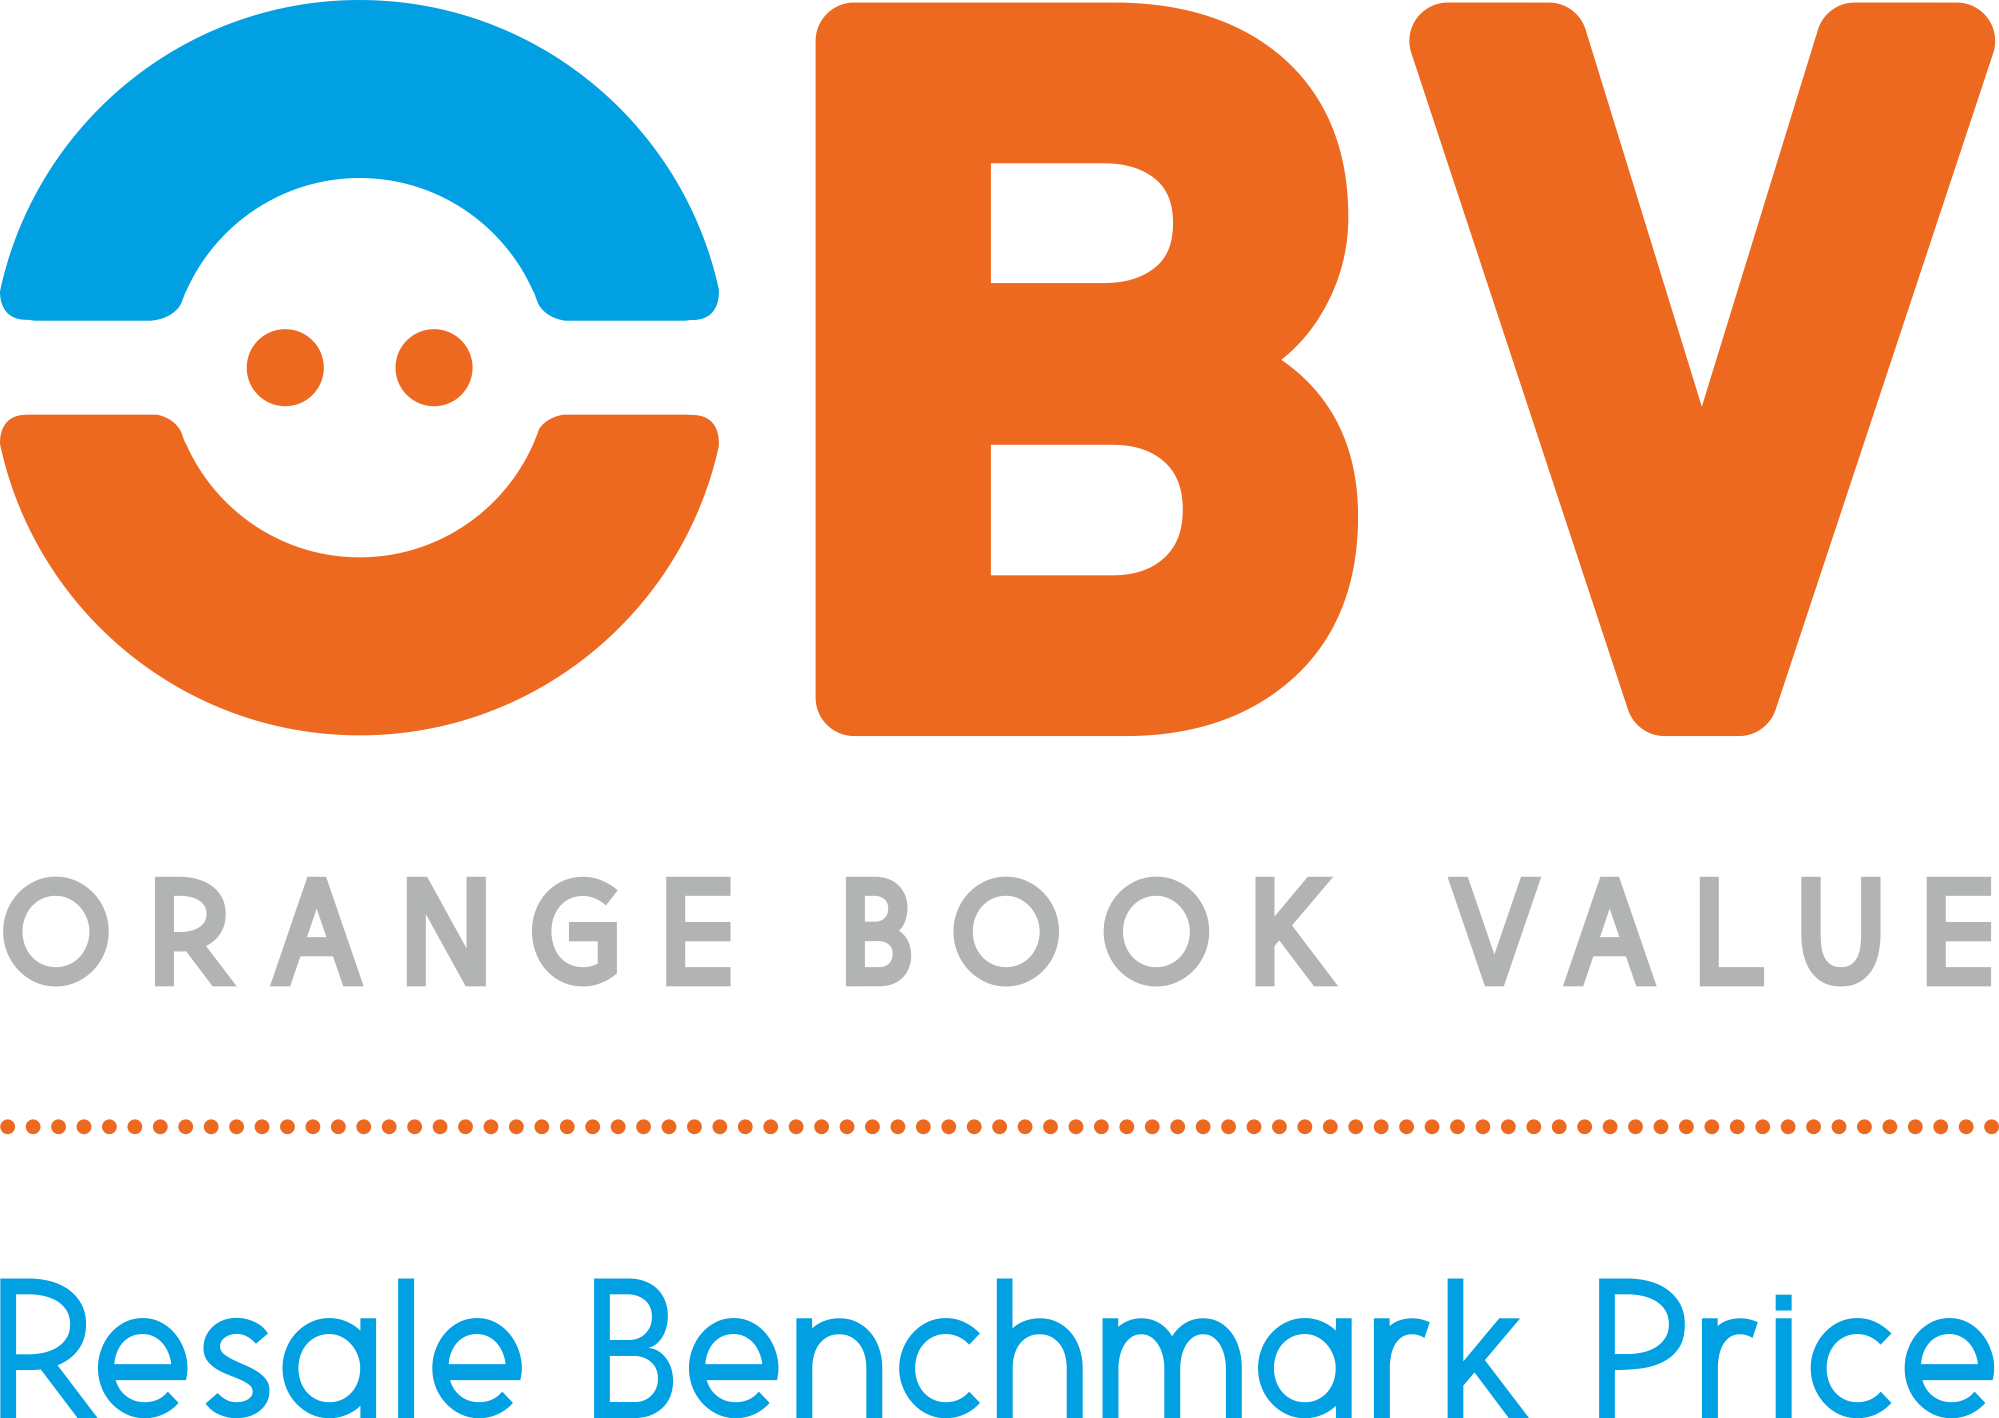 Orangebookvalue.com - Used Vehicle Pricing Calculator